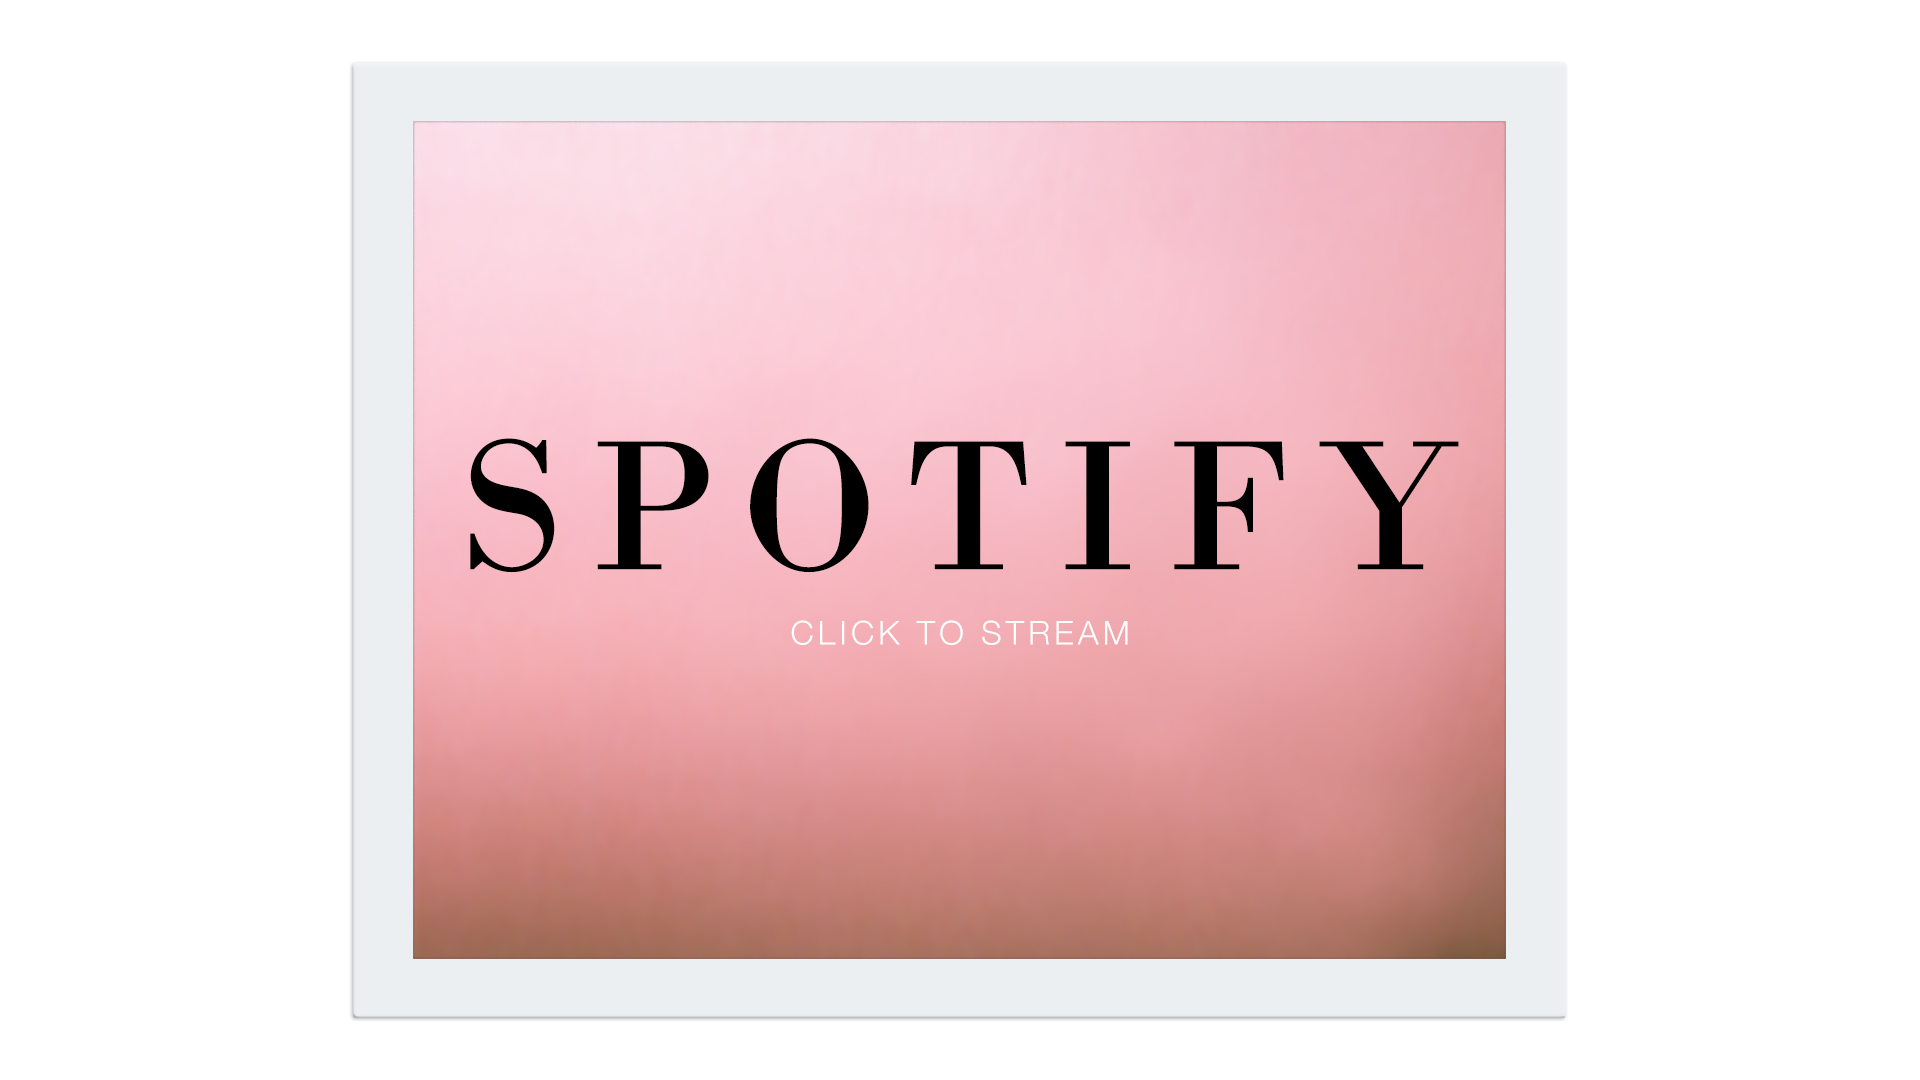 wc_web_spotify.png